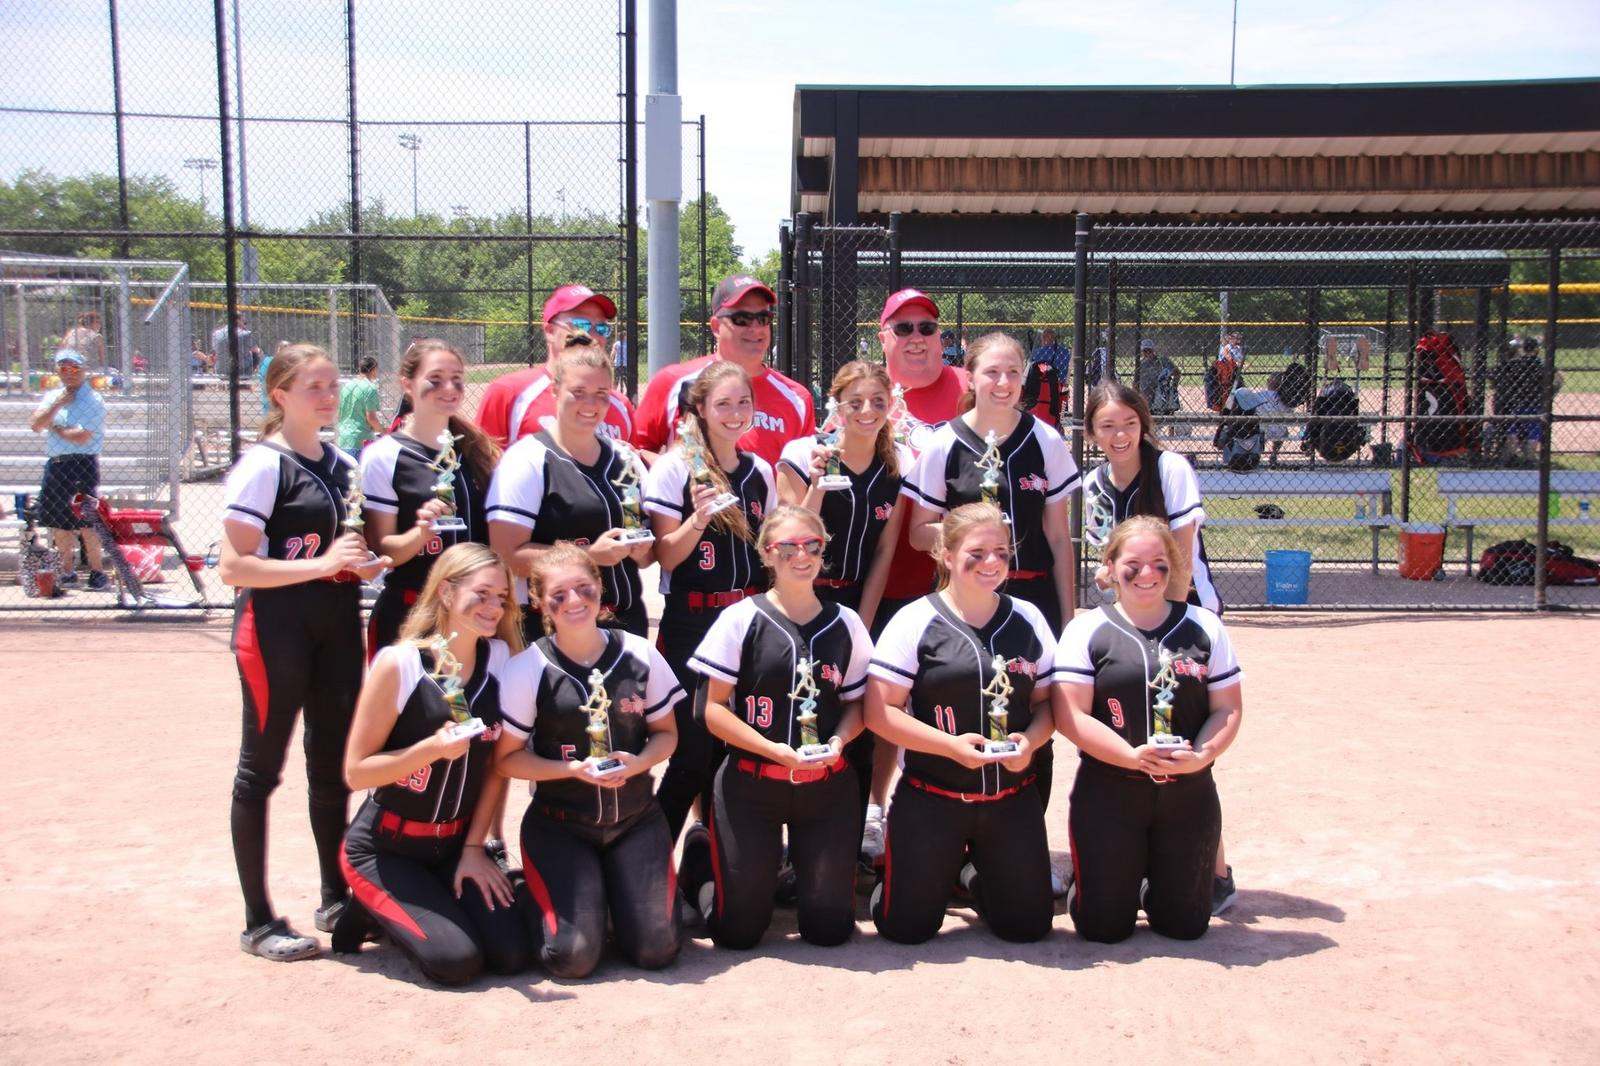 Clinton Macomb Girls Fastpitch Softball